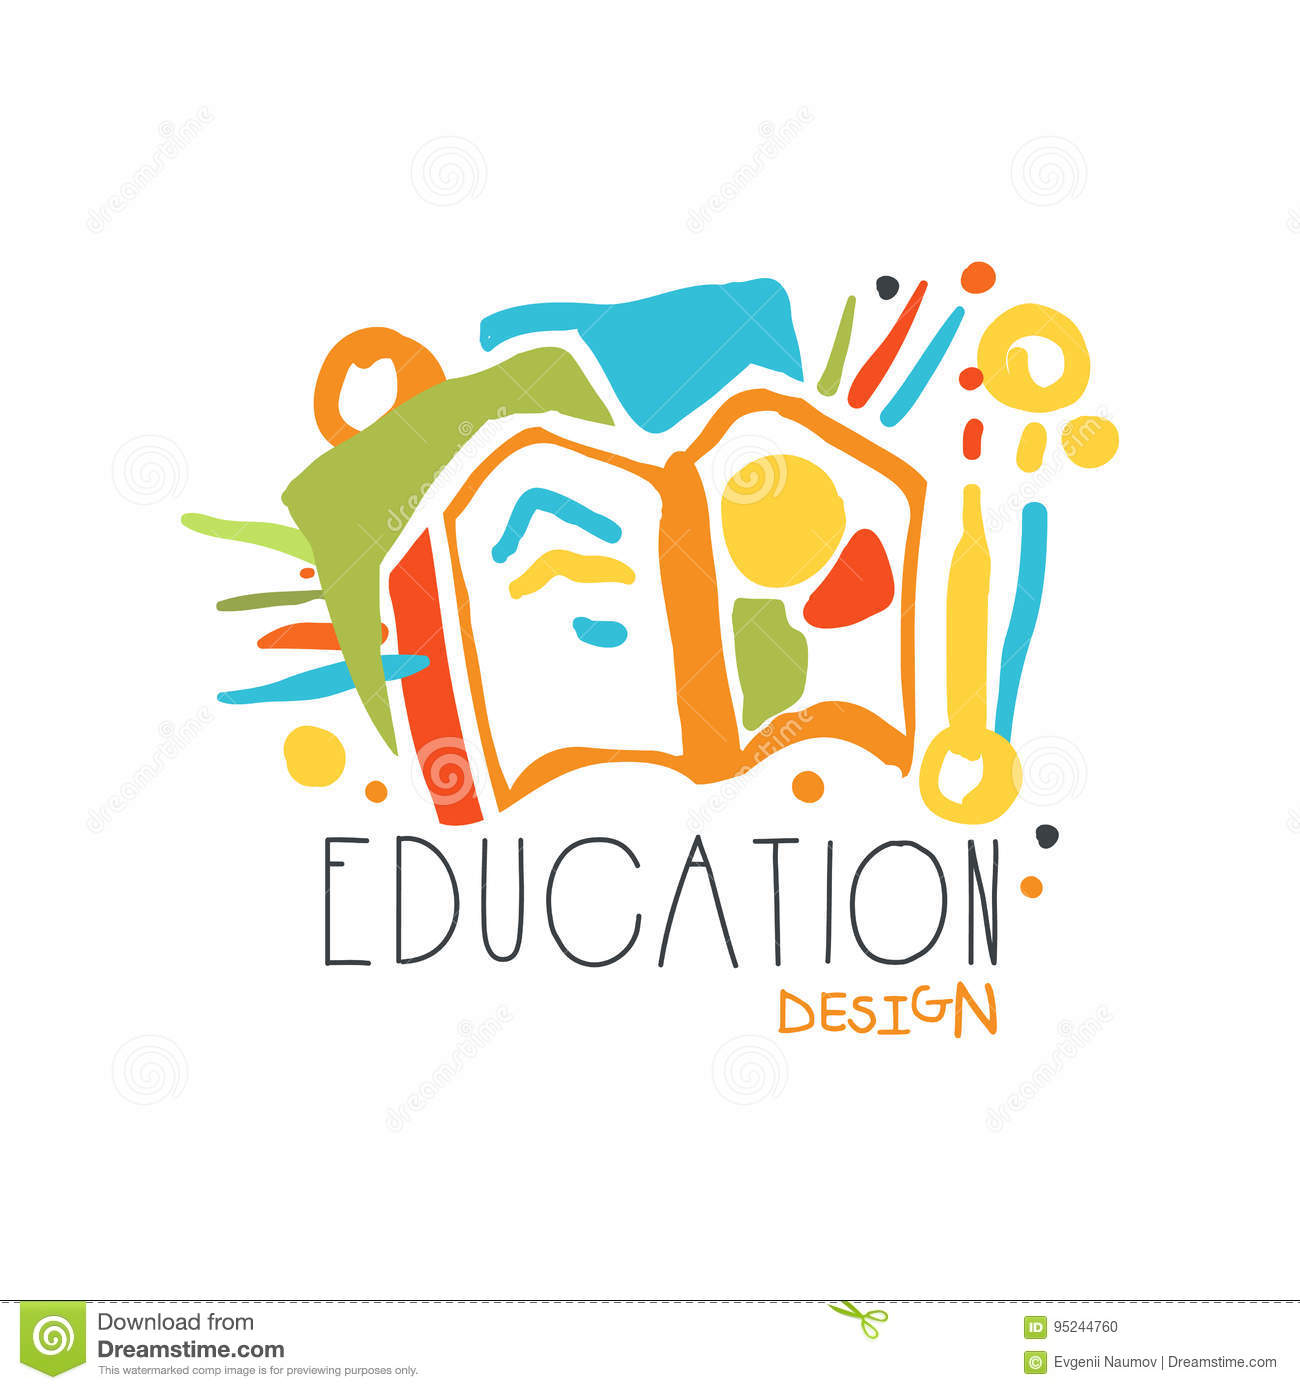 Education label design, back to school logo graphic template